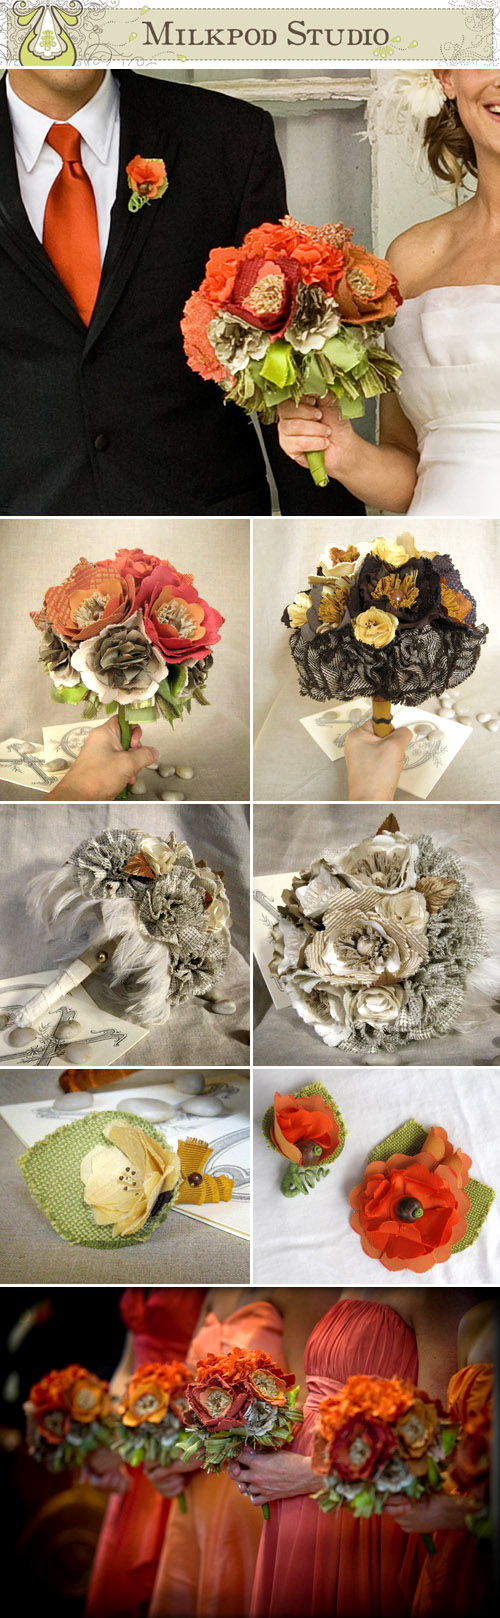 custom handmade fabric wedding flowers, boutonnieres and bridal bouquets by Milkpod Studio on Etsy.com